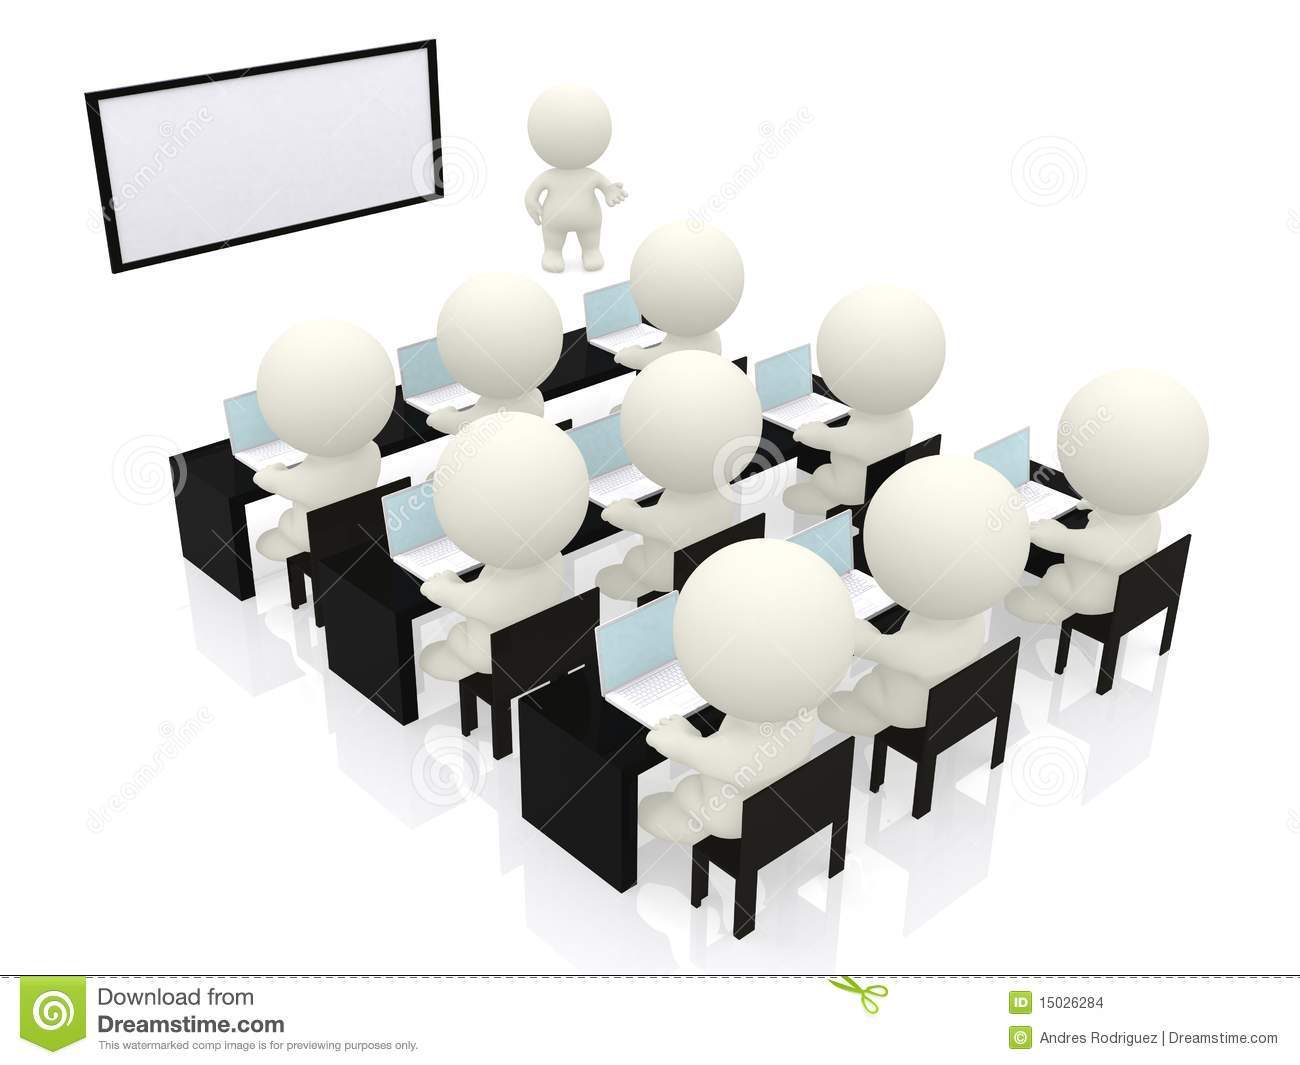 Clipart for business presentations jpg library stock Clipart for business presentations 2 » Clipart Portal jpg library stock